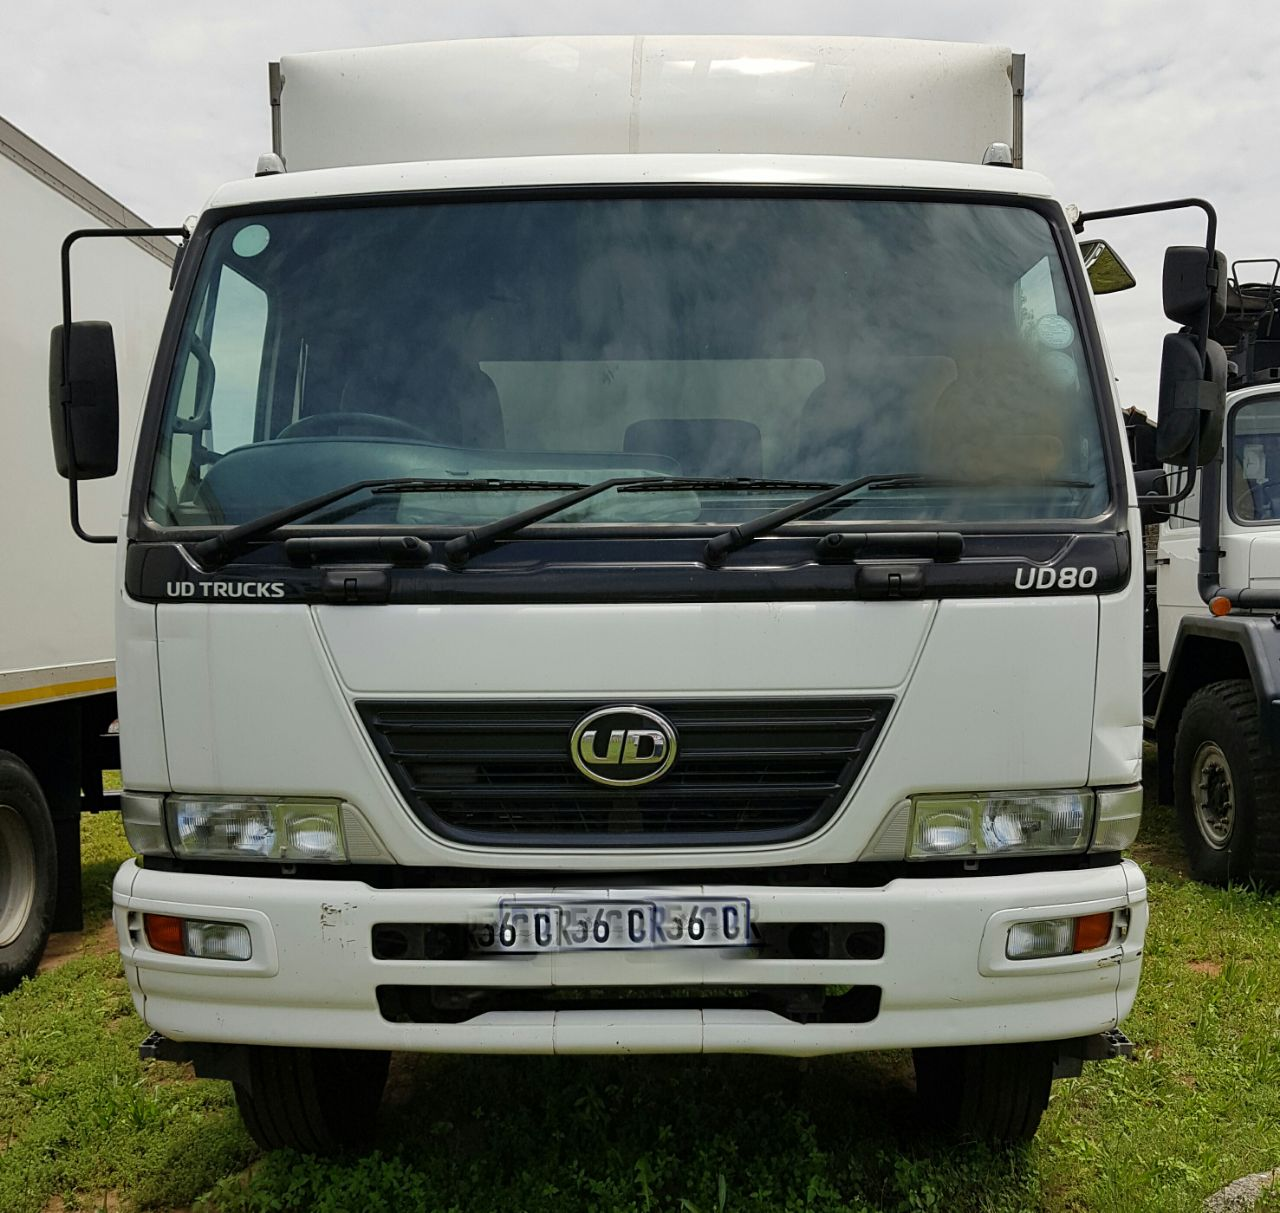 2012 Nissan UD80 Volume Bin truck for sale with a tail lift